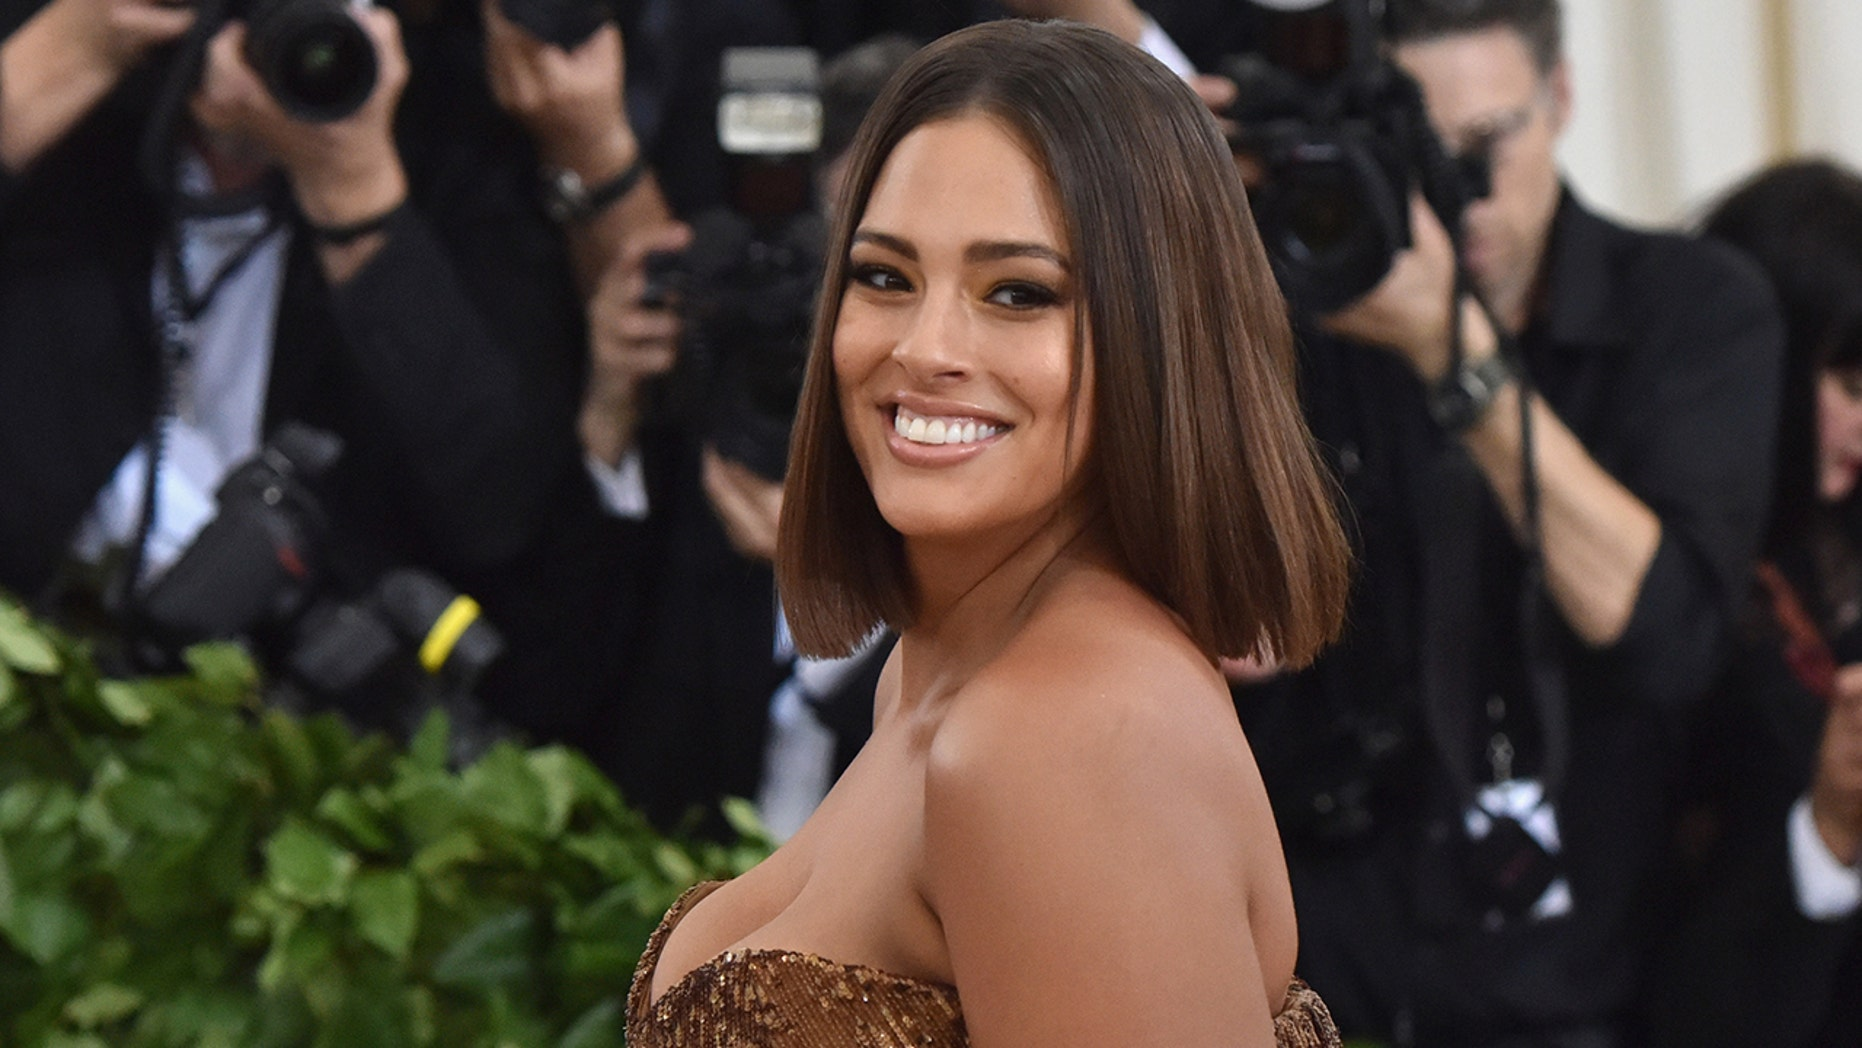 Ashley Graham schooled an Instagram commenter this week after sharing a series of racy snaps on the social media platform.